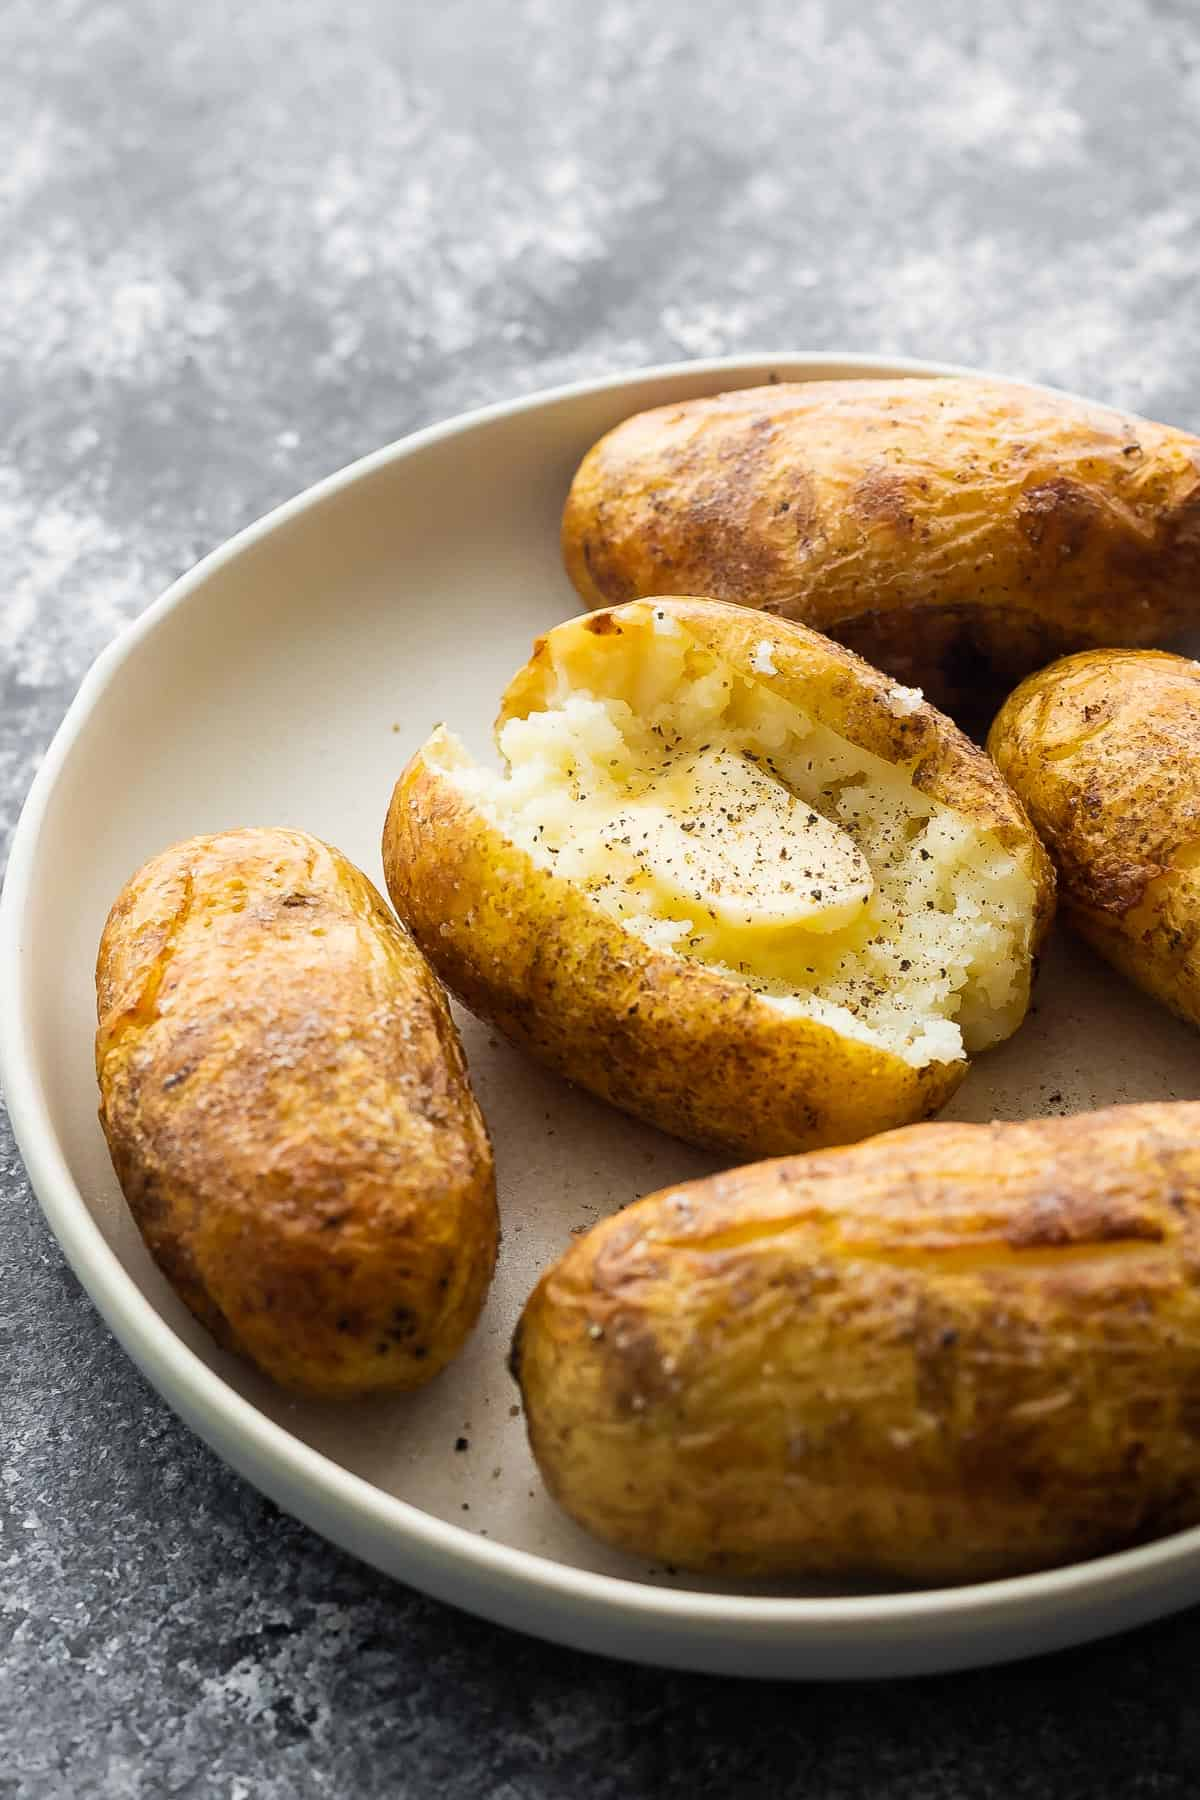 Baked potatoes in a ready-made saucepan with melted butter and black pepper